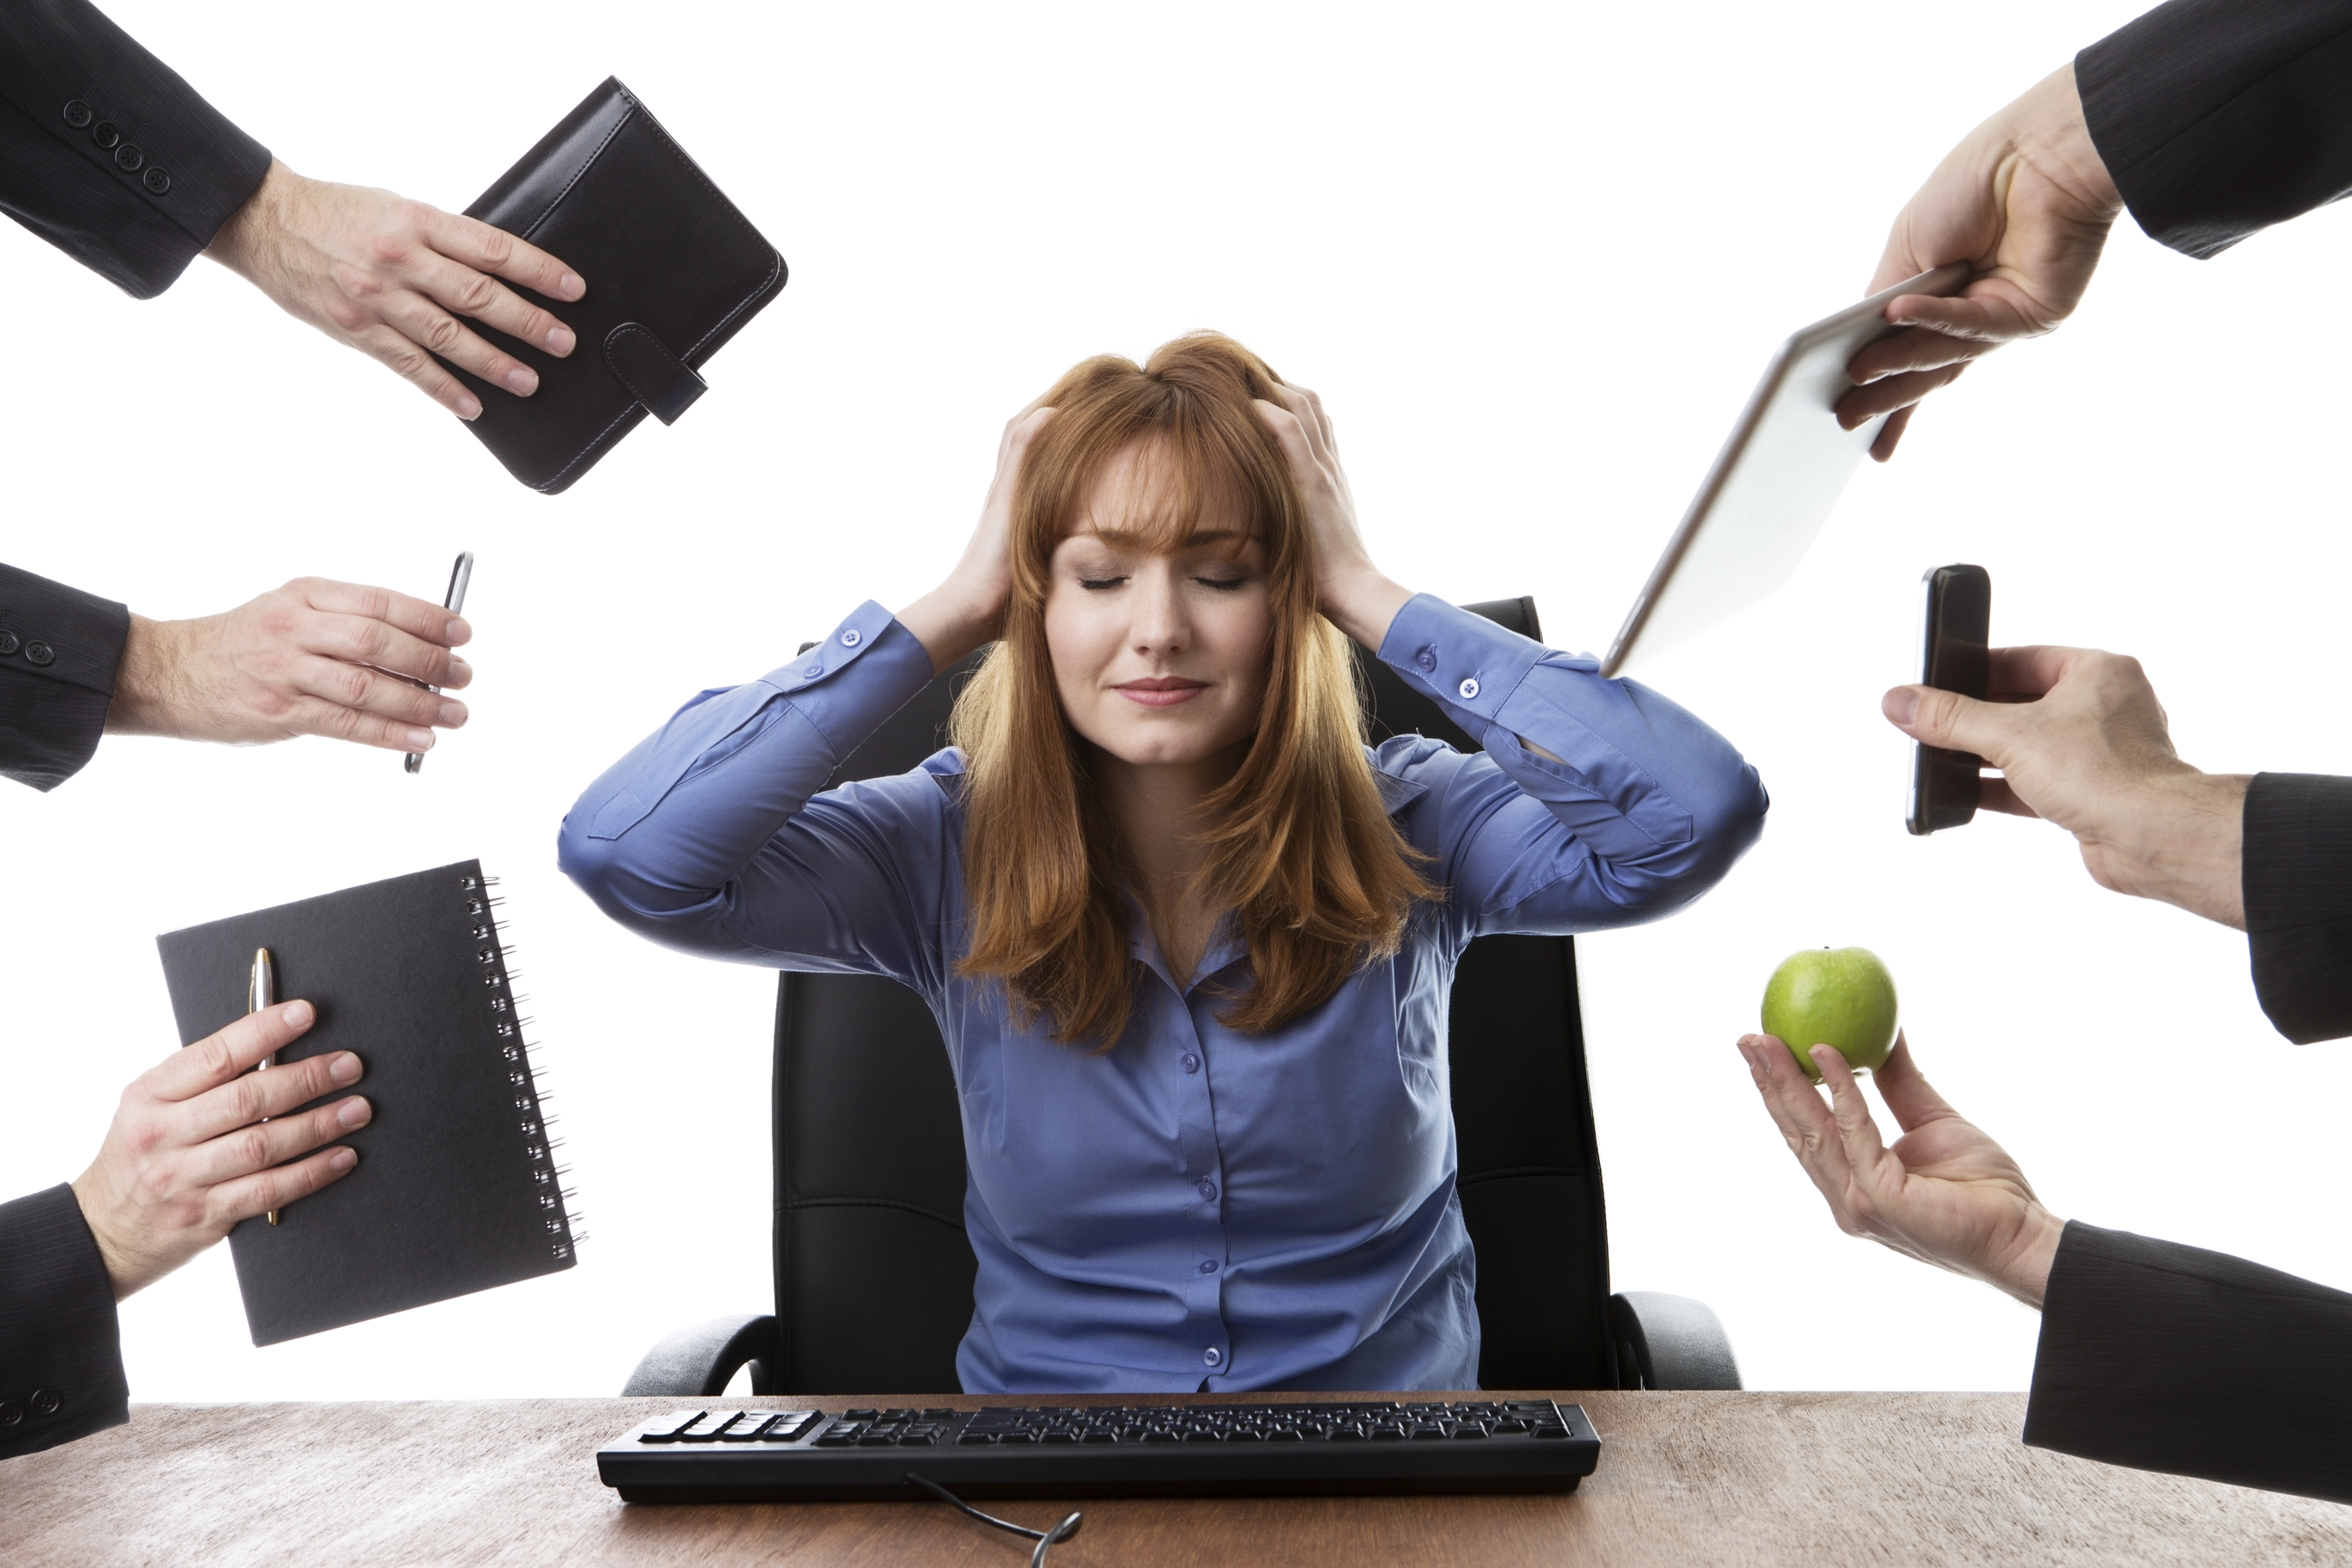 stress and burn out Increased illness: because chronic stress depletes and weakens one's body, burnout victims are more vulnerable to infections, colds, flus, and other immune system disorders the worse the burnout.